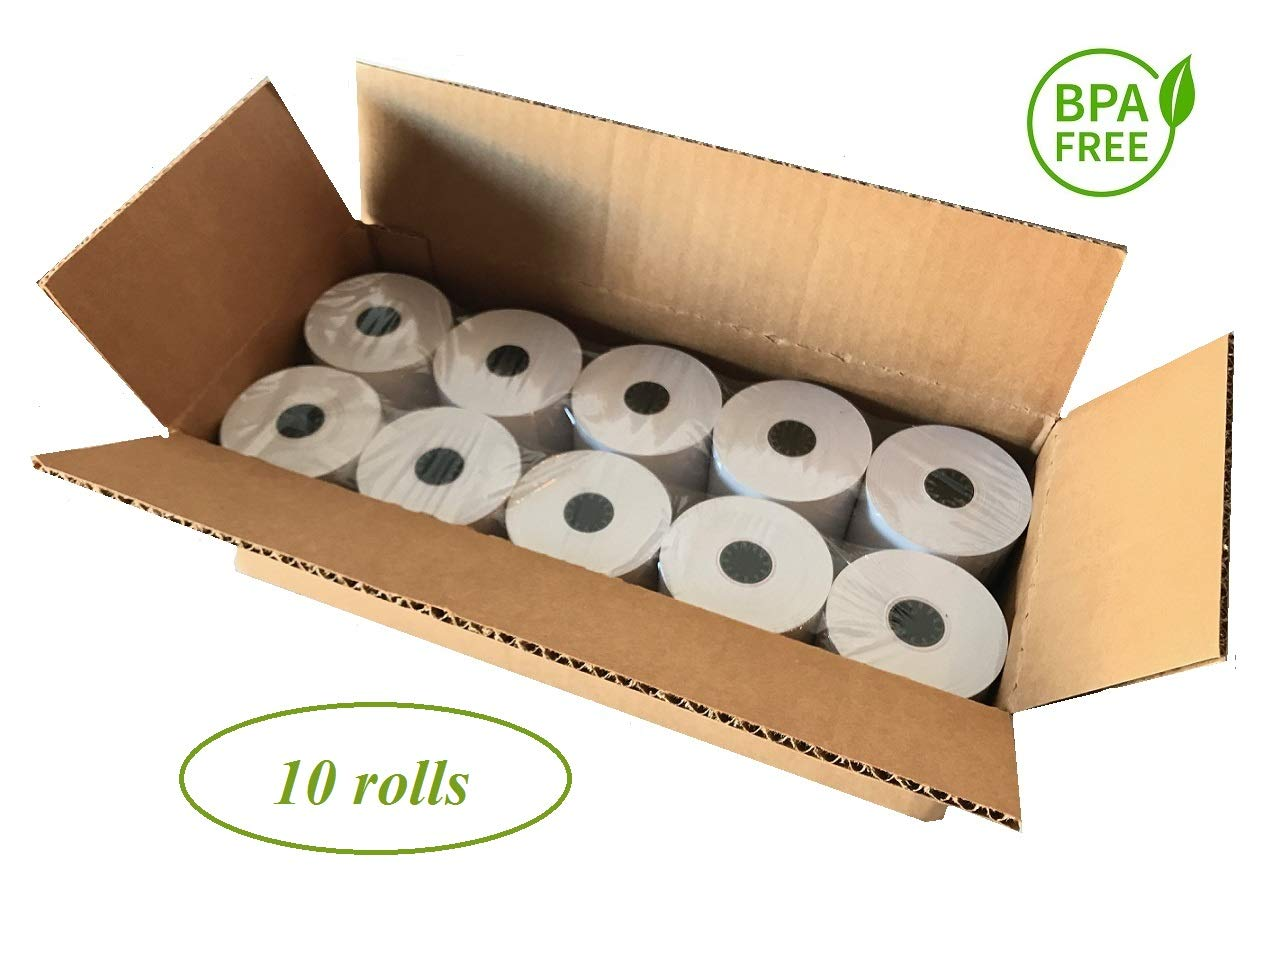 BAM POS, Thermal Paper Rolls, 3-1/8'' x 230 ft, Pack of 10 - Value Pack by BAM POS